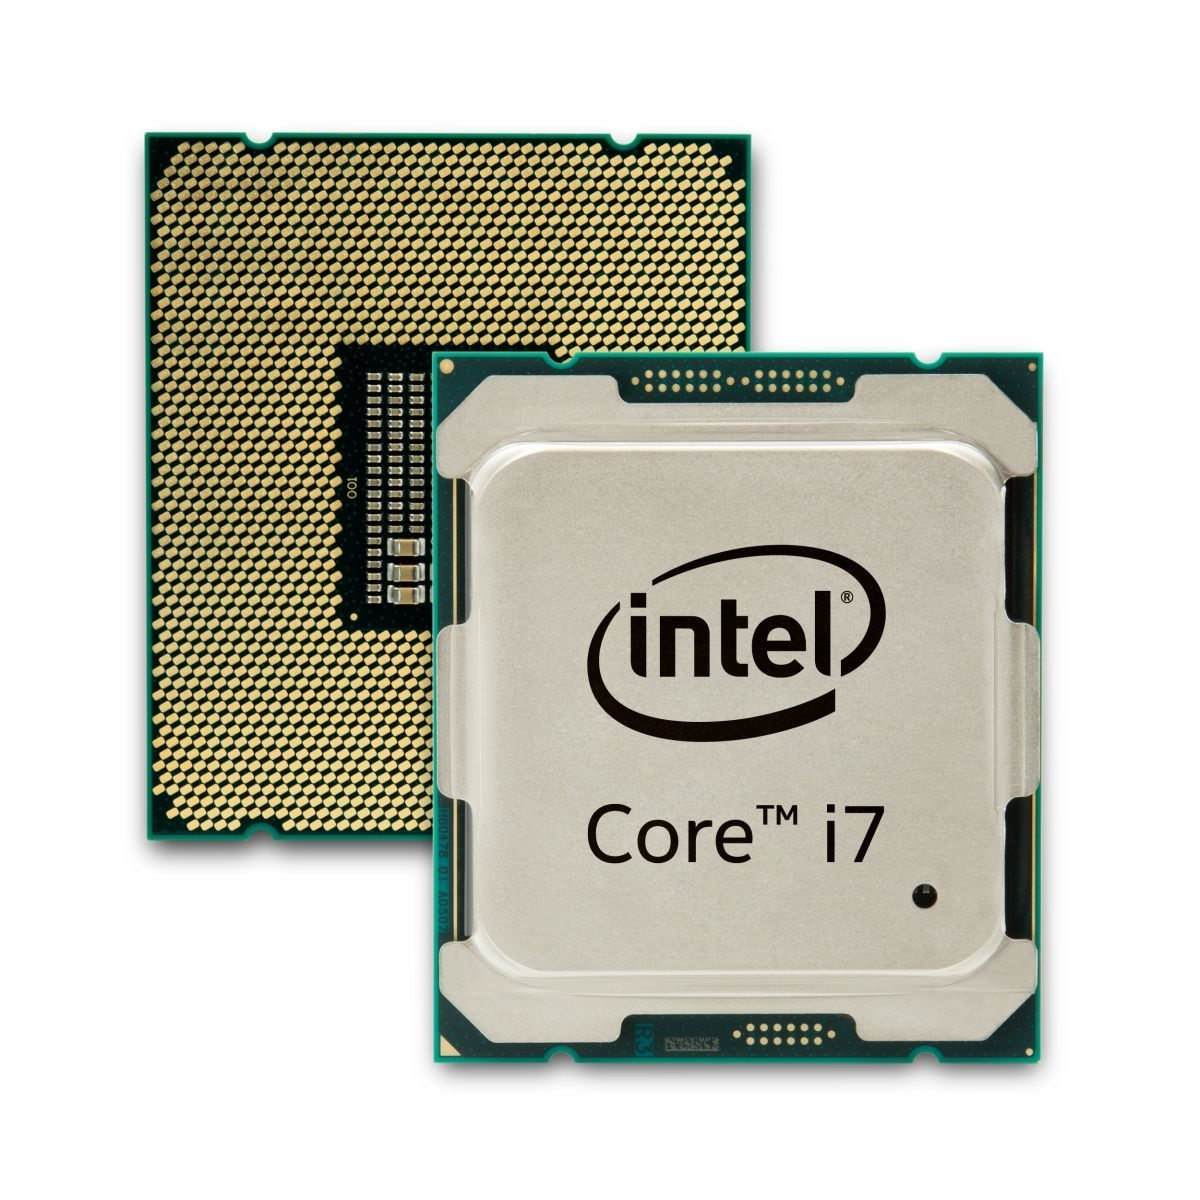 Intel Core i7 Extreme Edition Broadwell-E two side